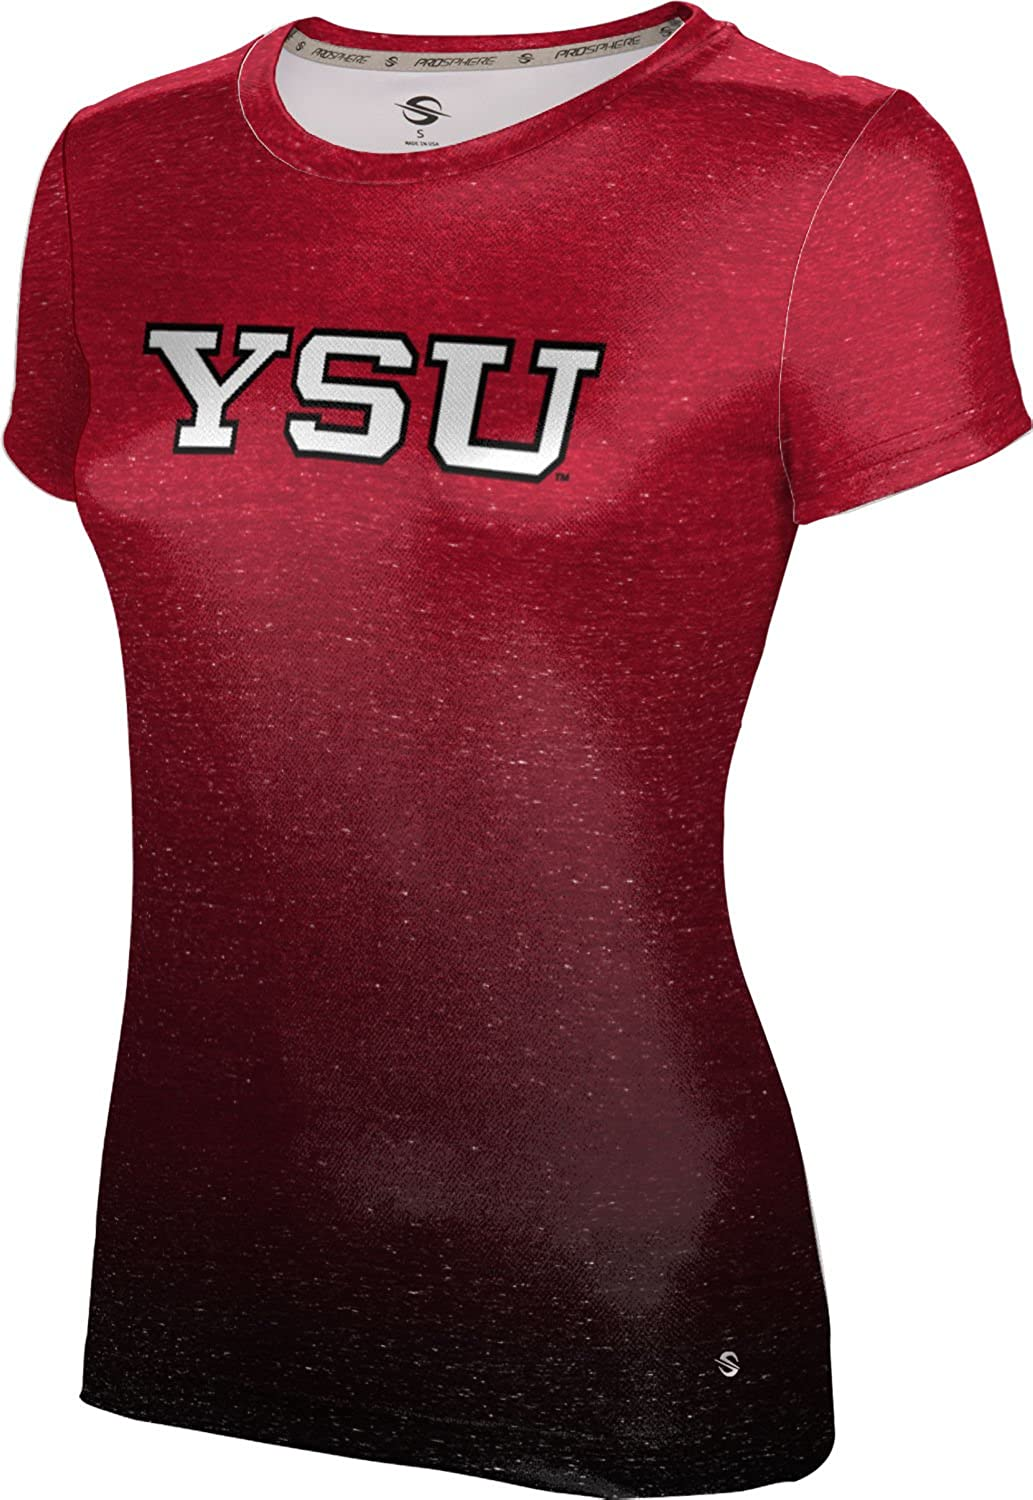 ProSphere Youngstown State University Girls' Performance T-Shirt (Gradient)